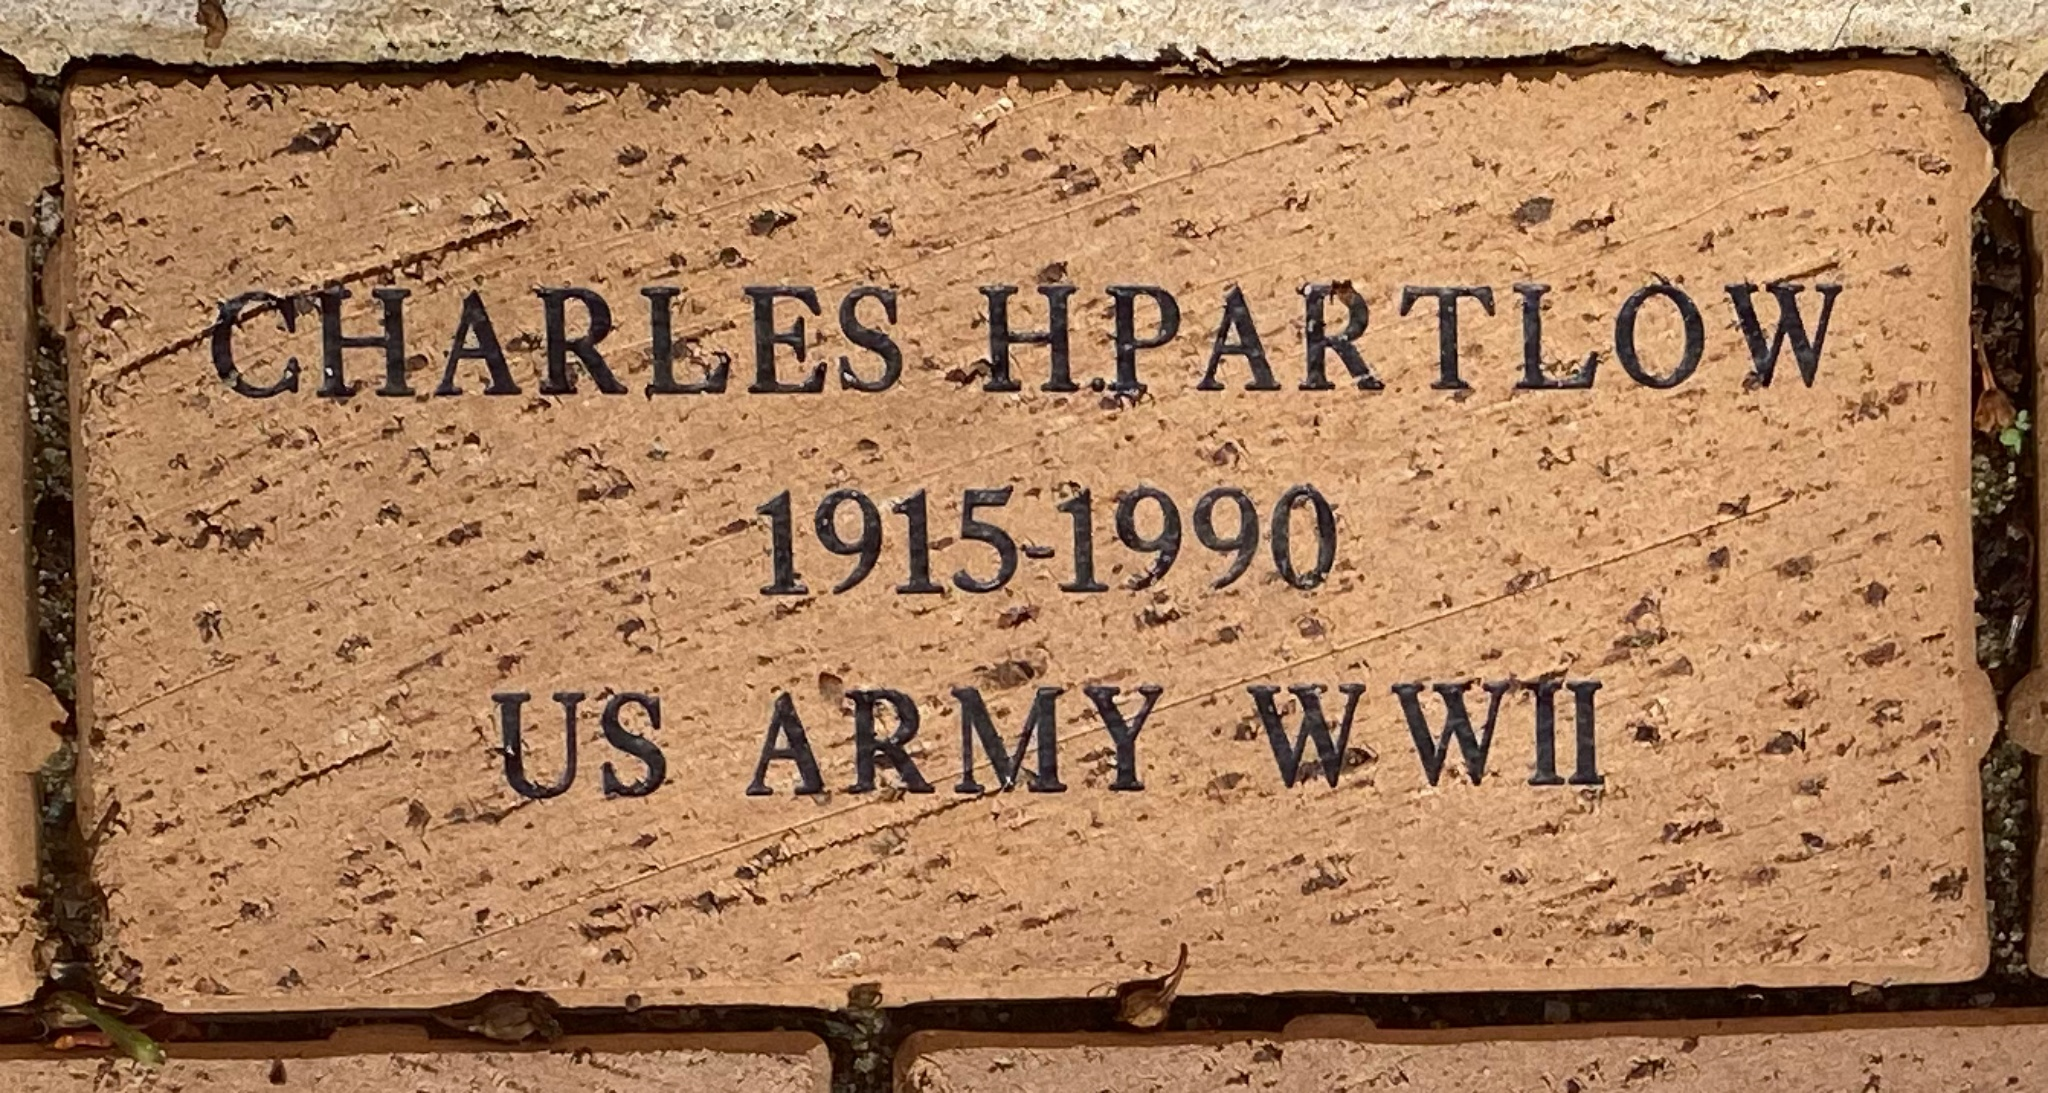 CHARLES H.PARTLOW 1915-1990 US ARMY WWII